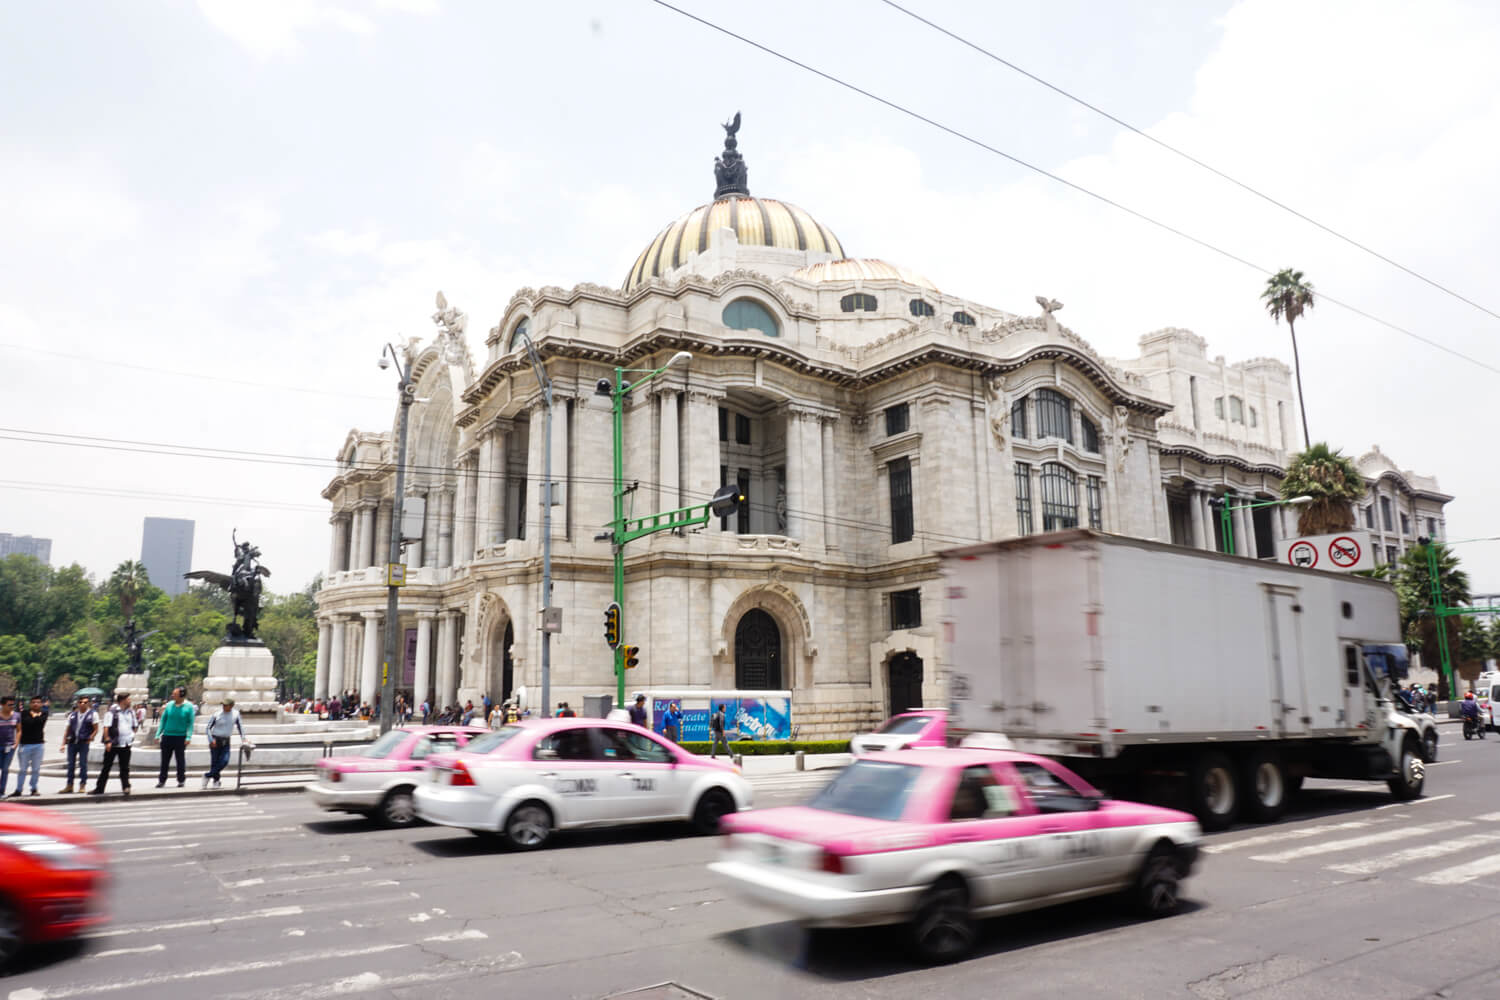 What to do in Mexico City: Palacio de Bellas Artes (Palace of the Fine Arts)